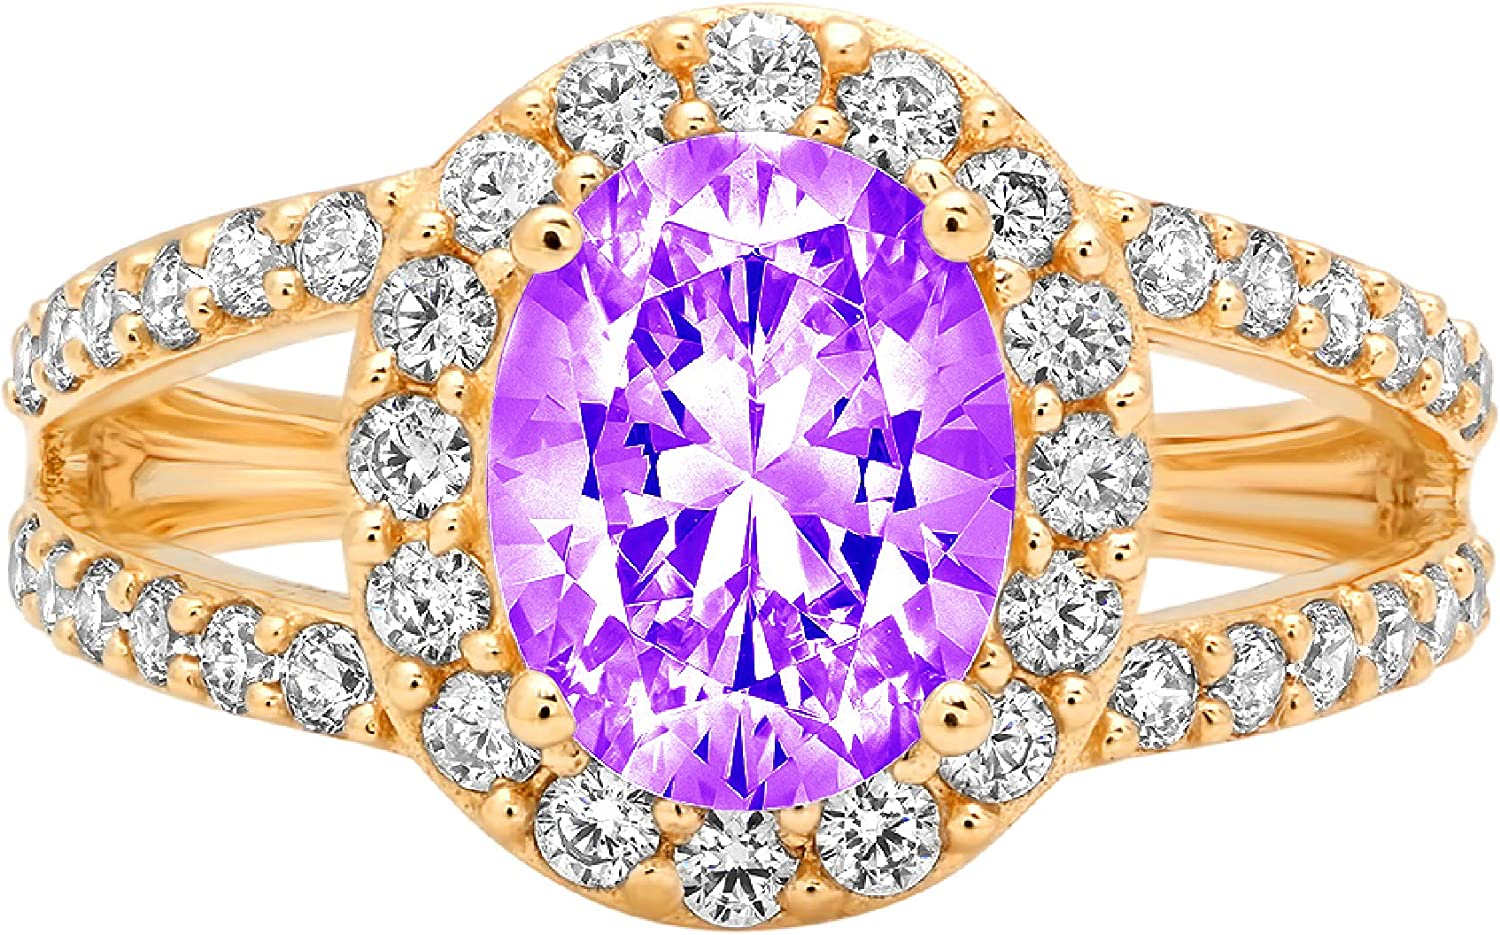 2.18ct Oval Cut Solitaire with Accent Halo split shank Natural Purple Amethyst Gem Stone Ideal VVS1 Engagement Promise Statement Anniversary Bridal Wedding ring 14k Yellow Gold